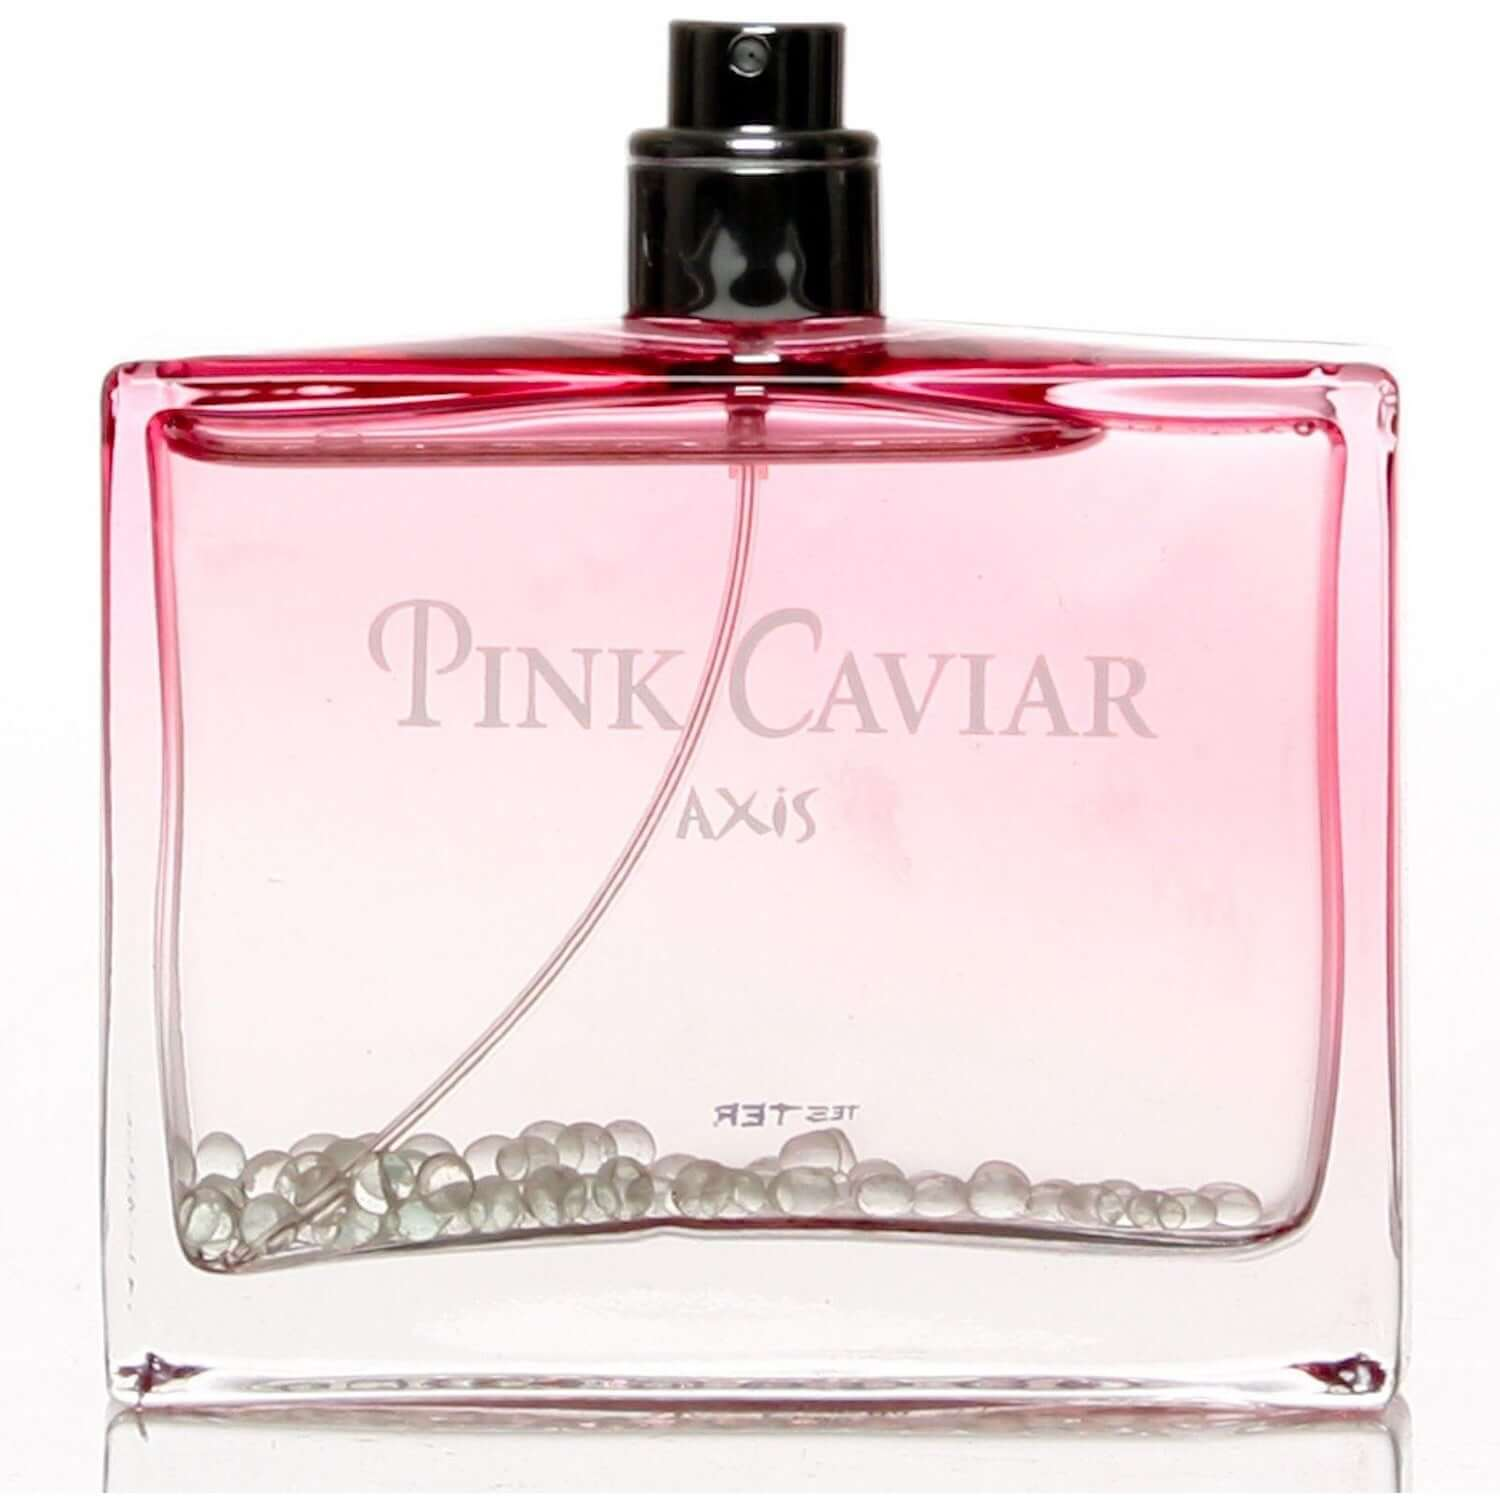 axis-pink-caviar-perfume-for-women-3-0-oz-spray-edt-new-tester